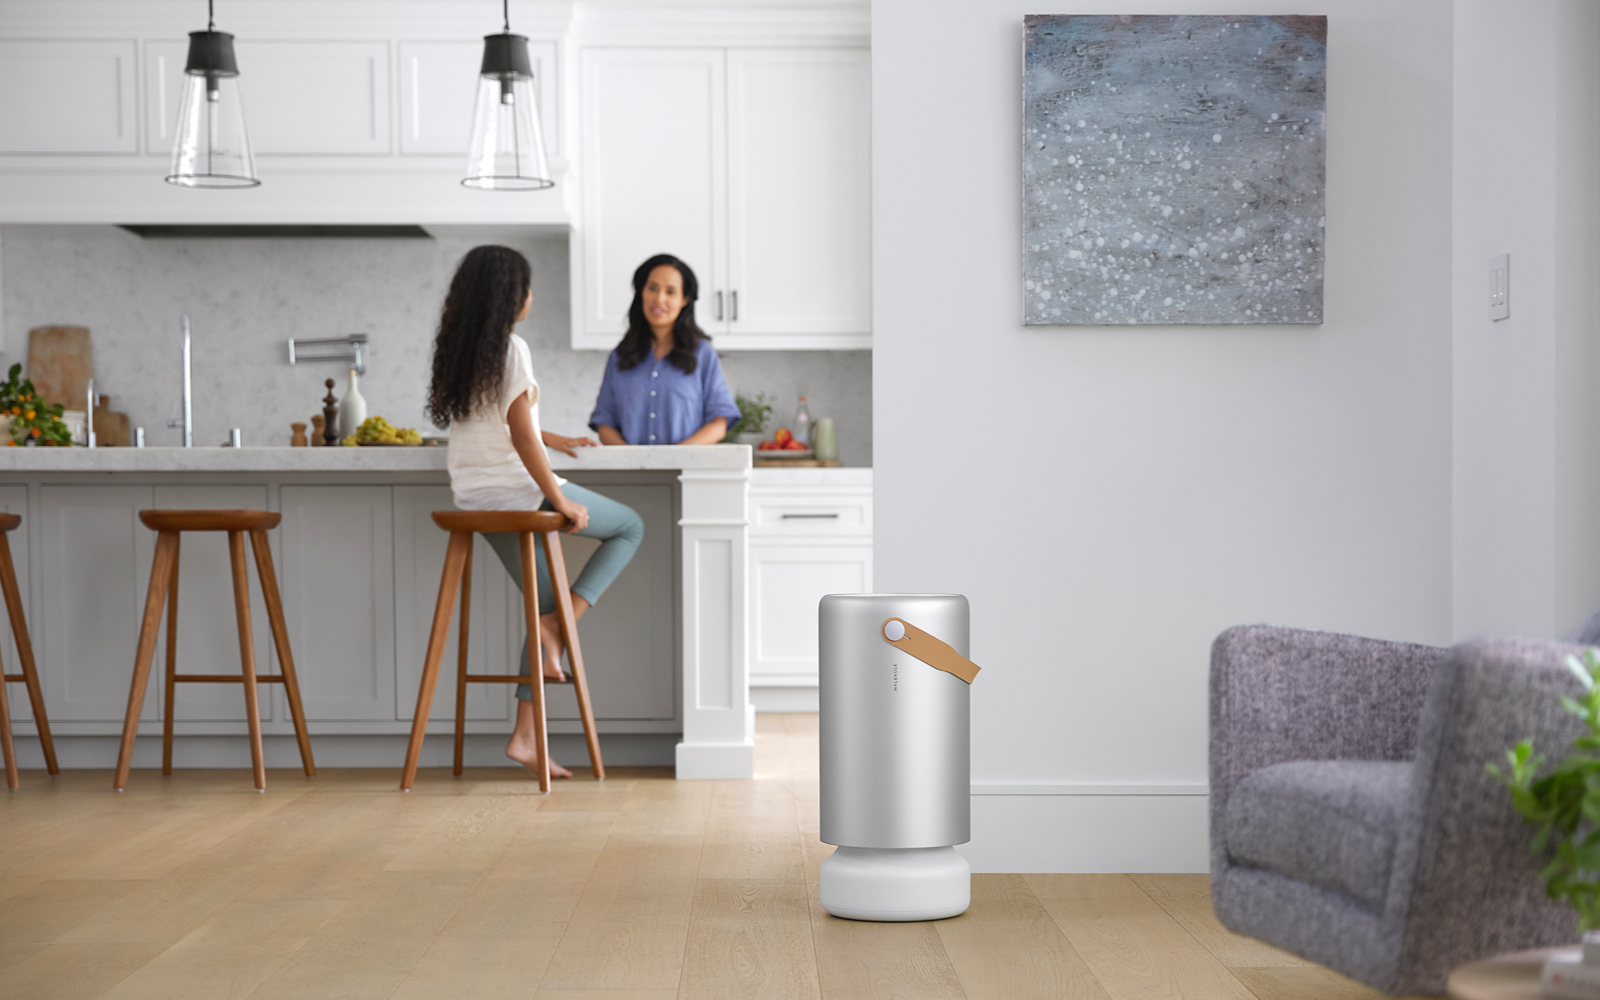 The cylindrical Molekule air purifier in a room